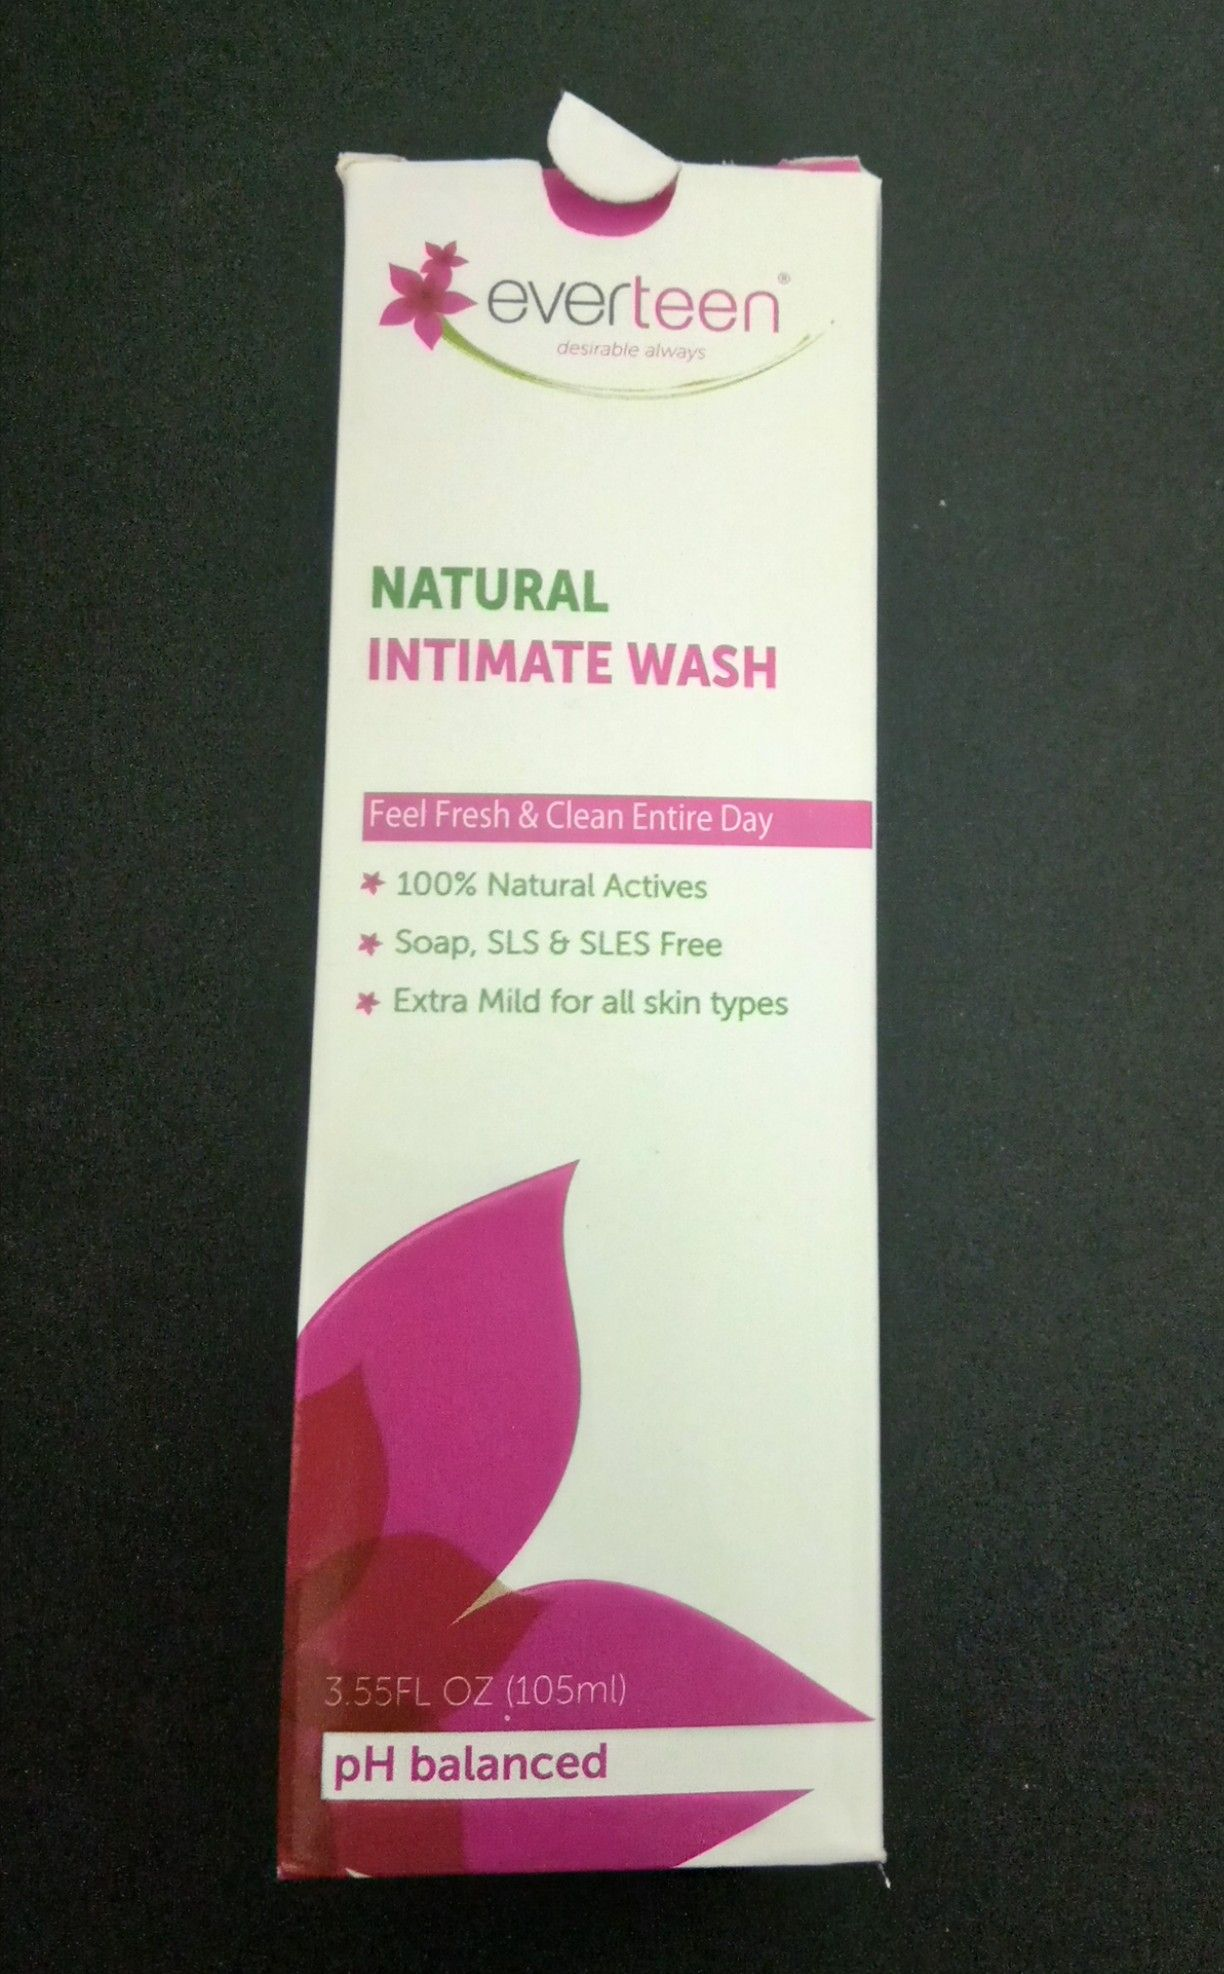 Everteen Natural Intimate Wash Intimate wash, Best